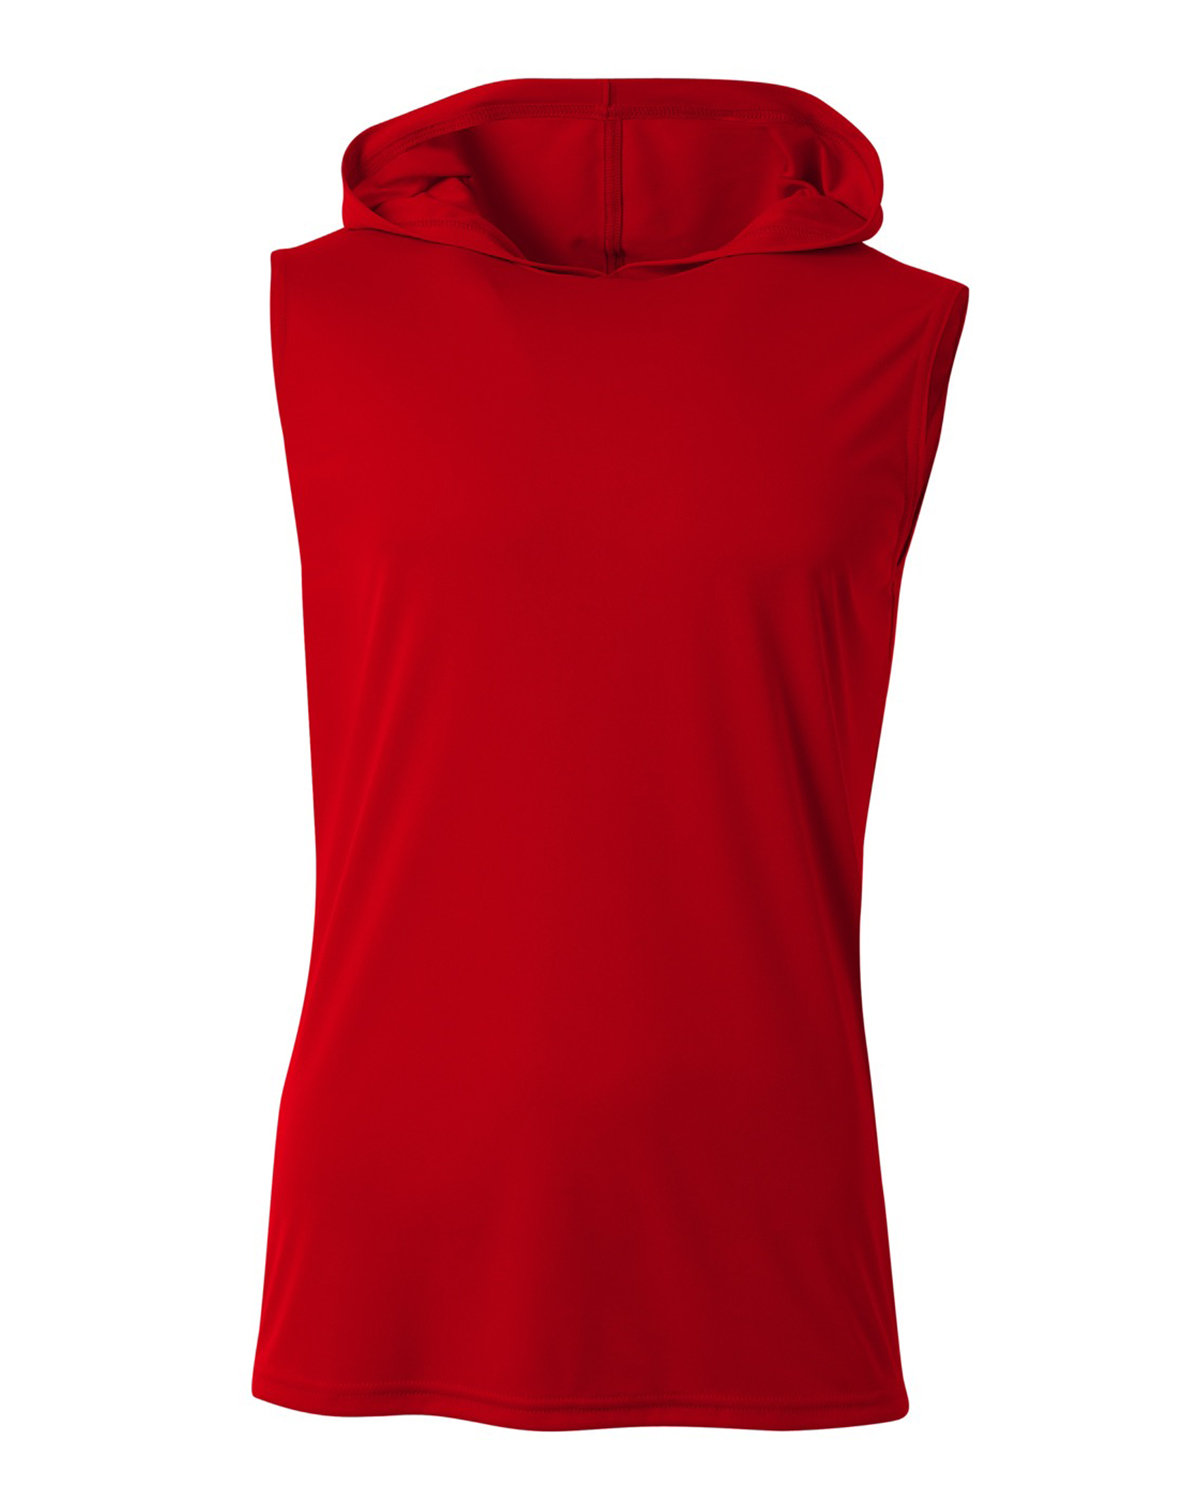 A4 Men's Cooling Performance Sleeveless Hooded T-shirt SCARLET